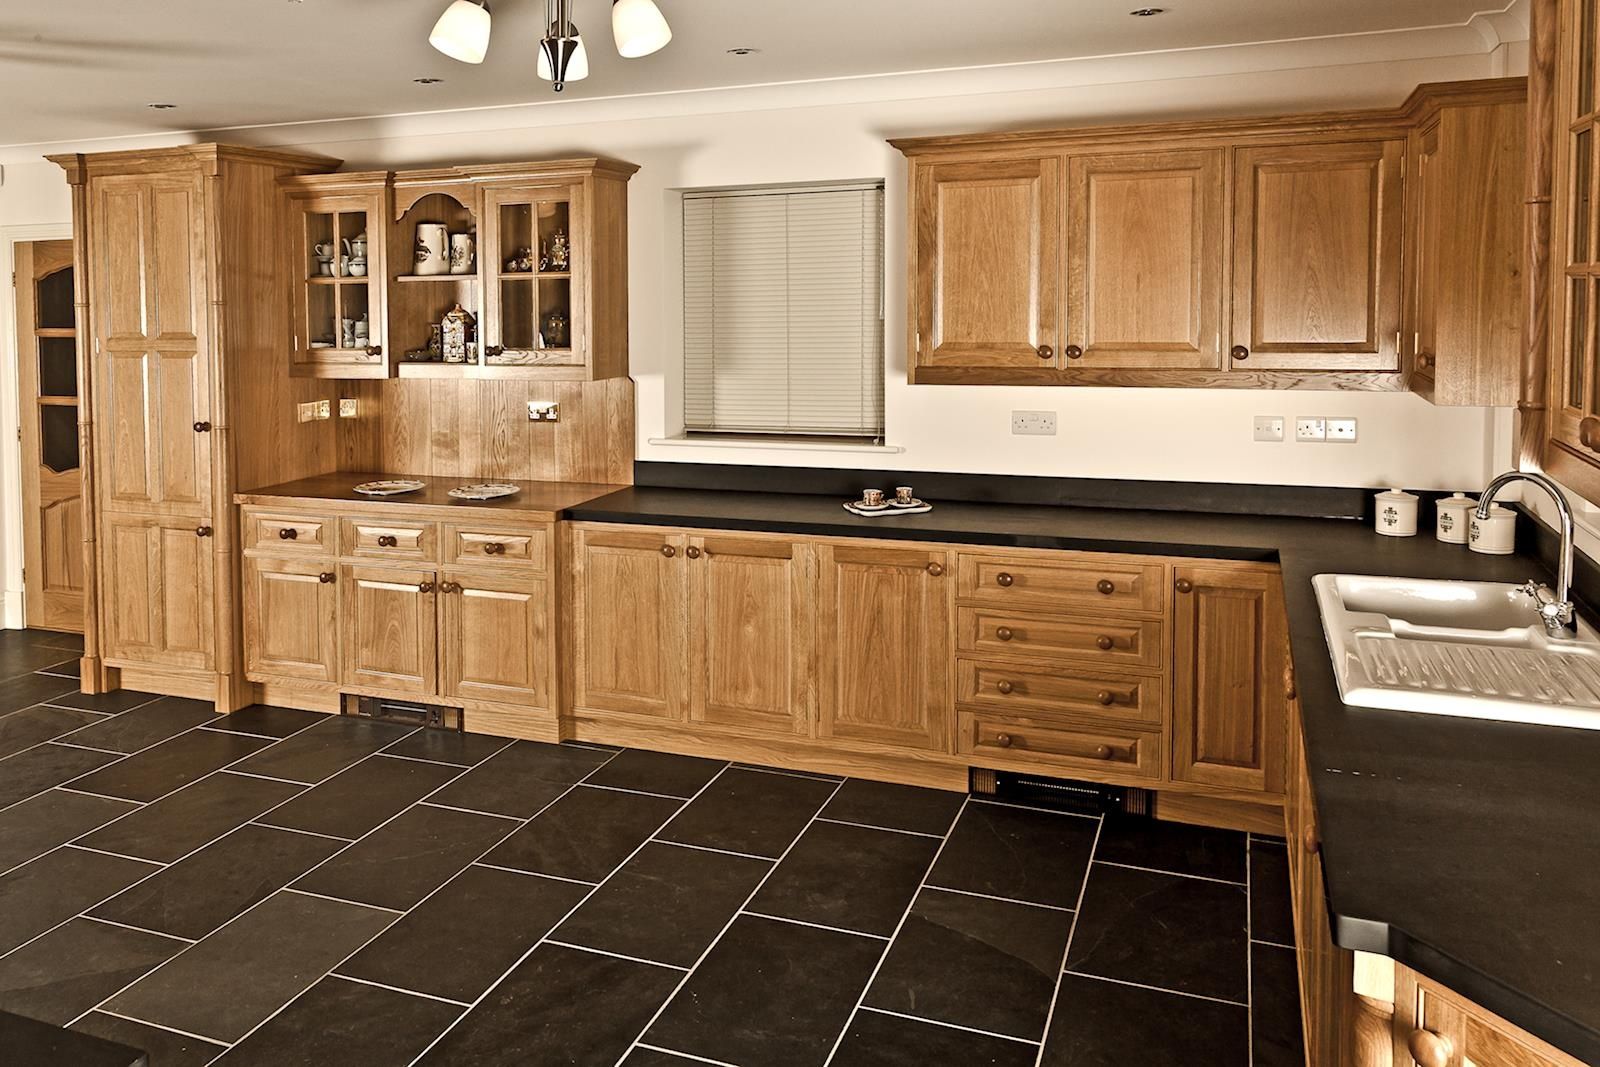 Kitchen Cabinet Restoration Cabinet Door Refinishing Cabinet Refinishing Cost Bills Kitchen